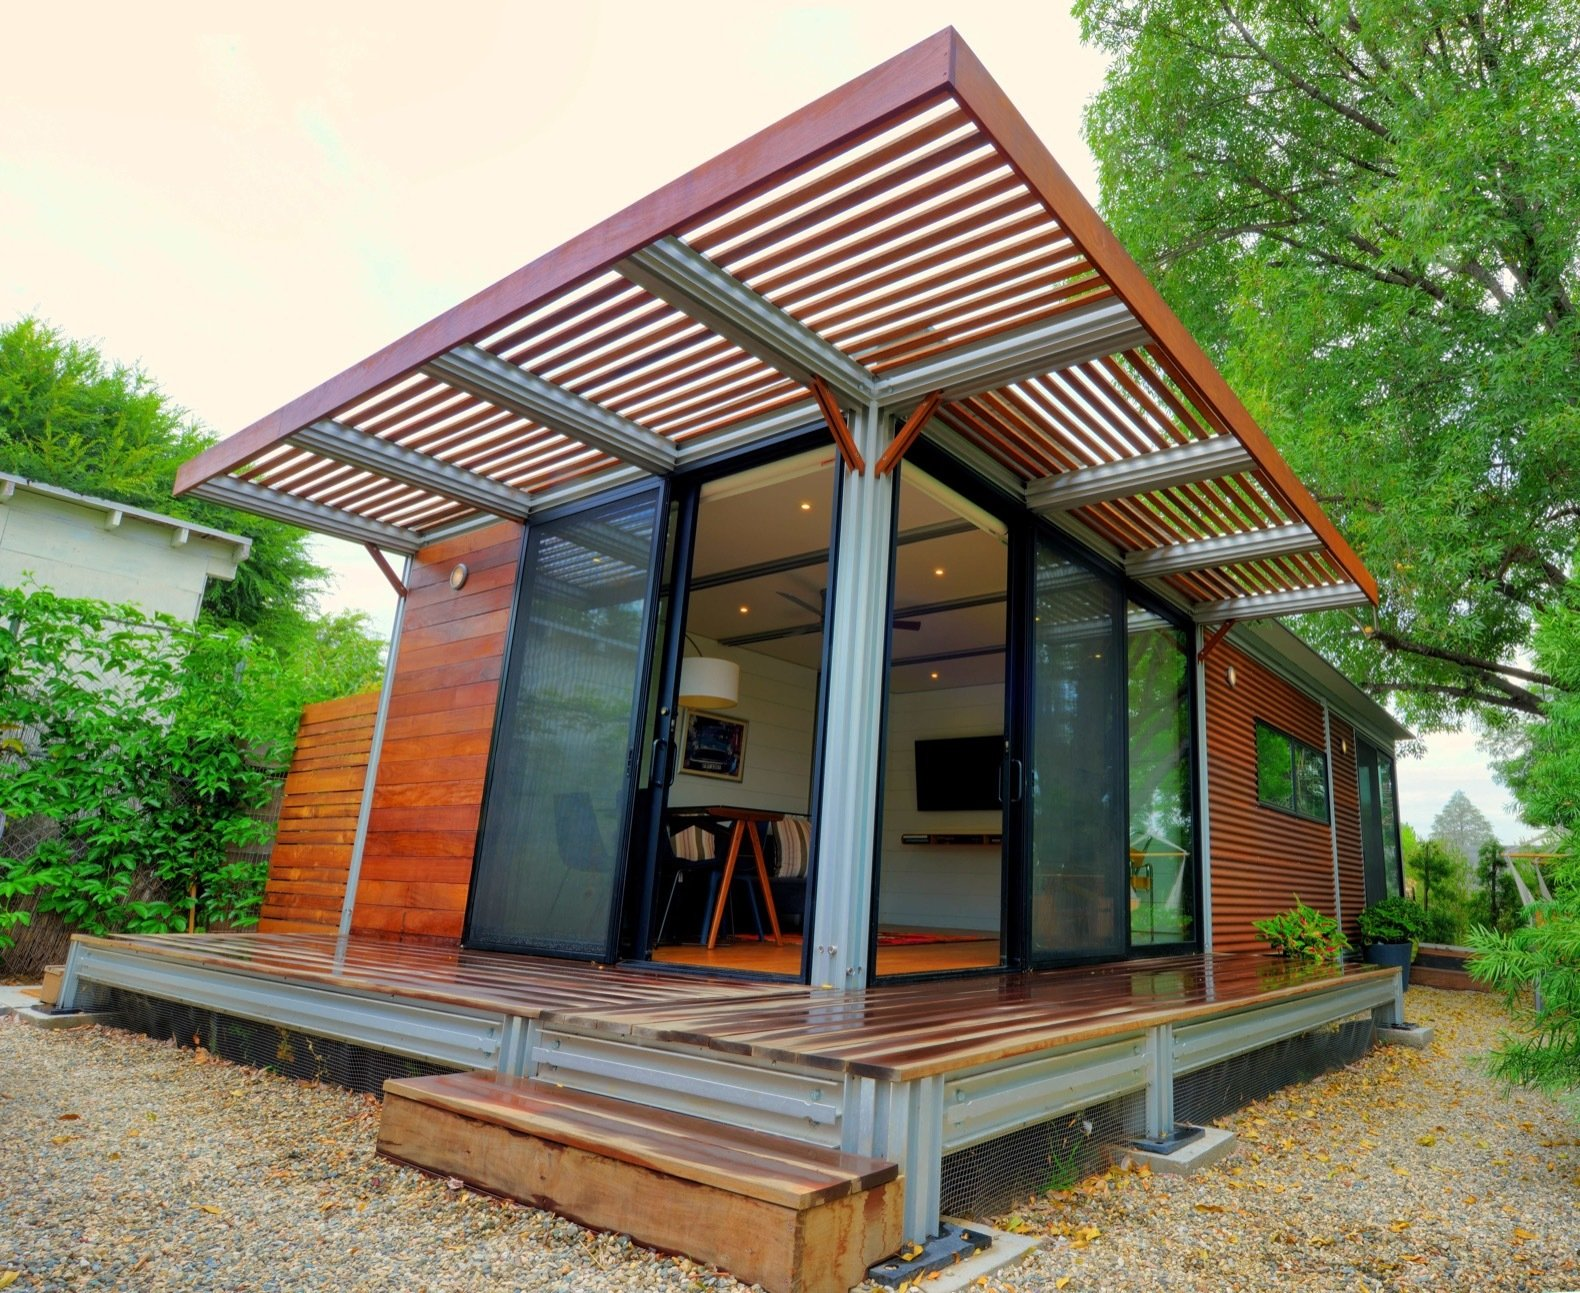 Boxy home with partially covered porch and sliding glass doors.